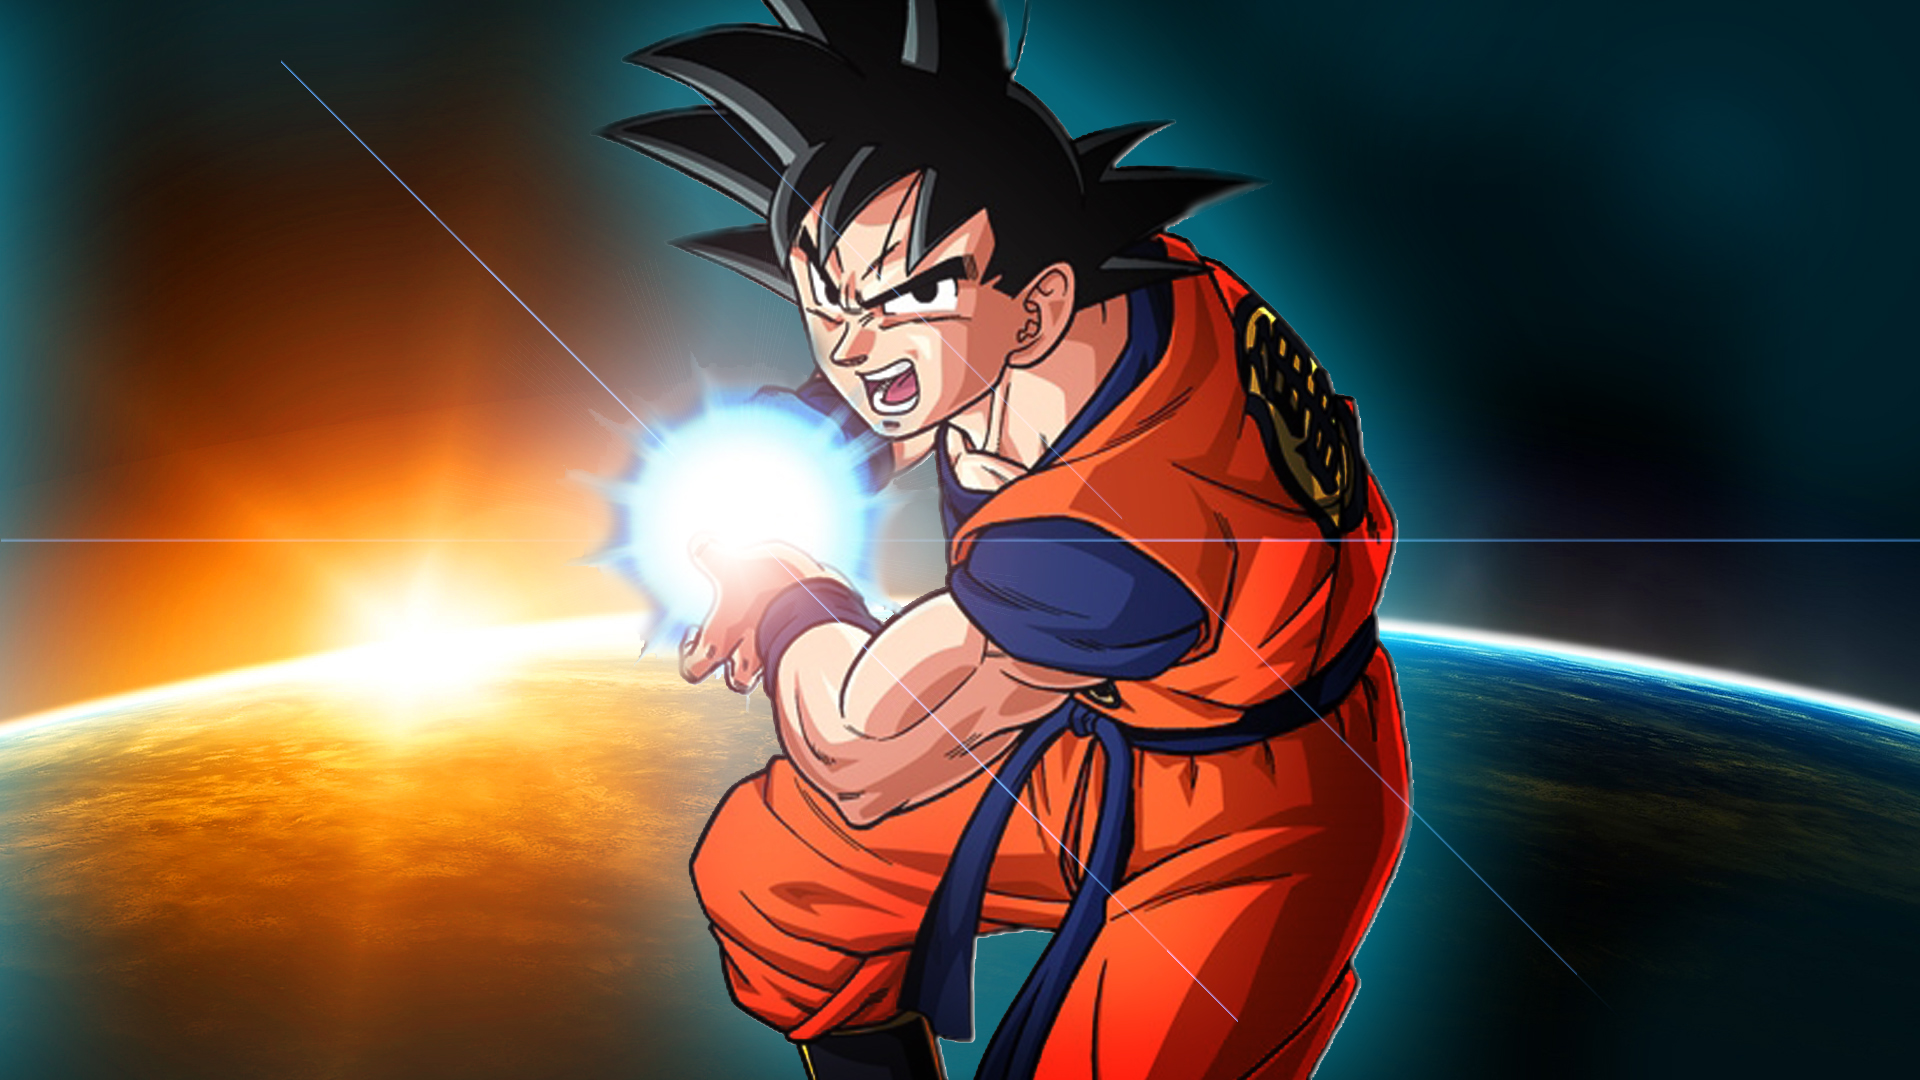 Goku Kamehameha Dbz Kakarot Wallpaper 1920x1080 Full HD Wallpapers 1920x1080